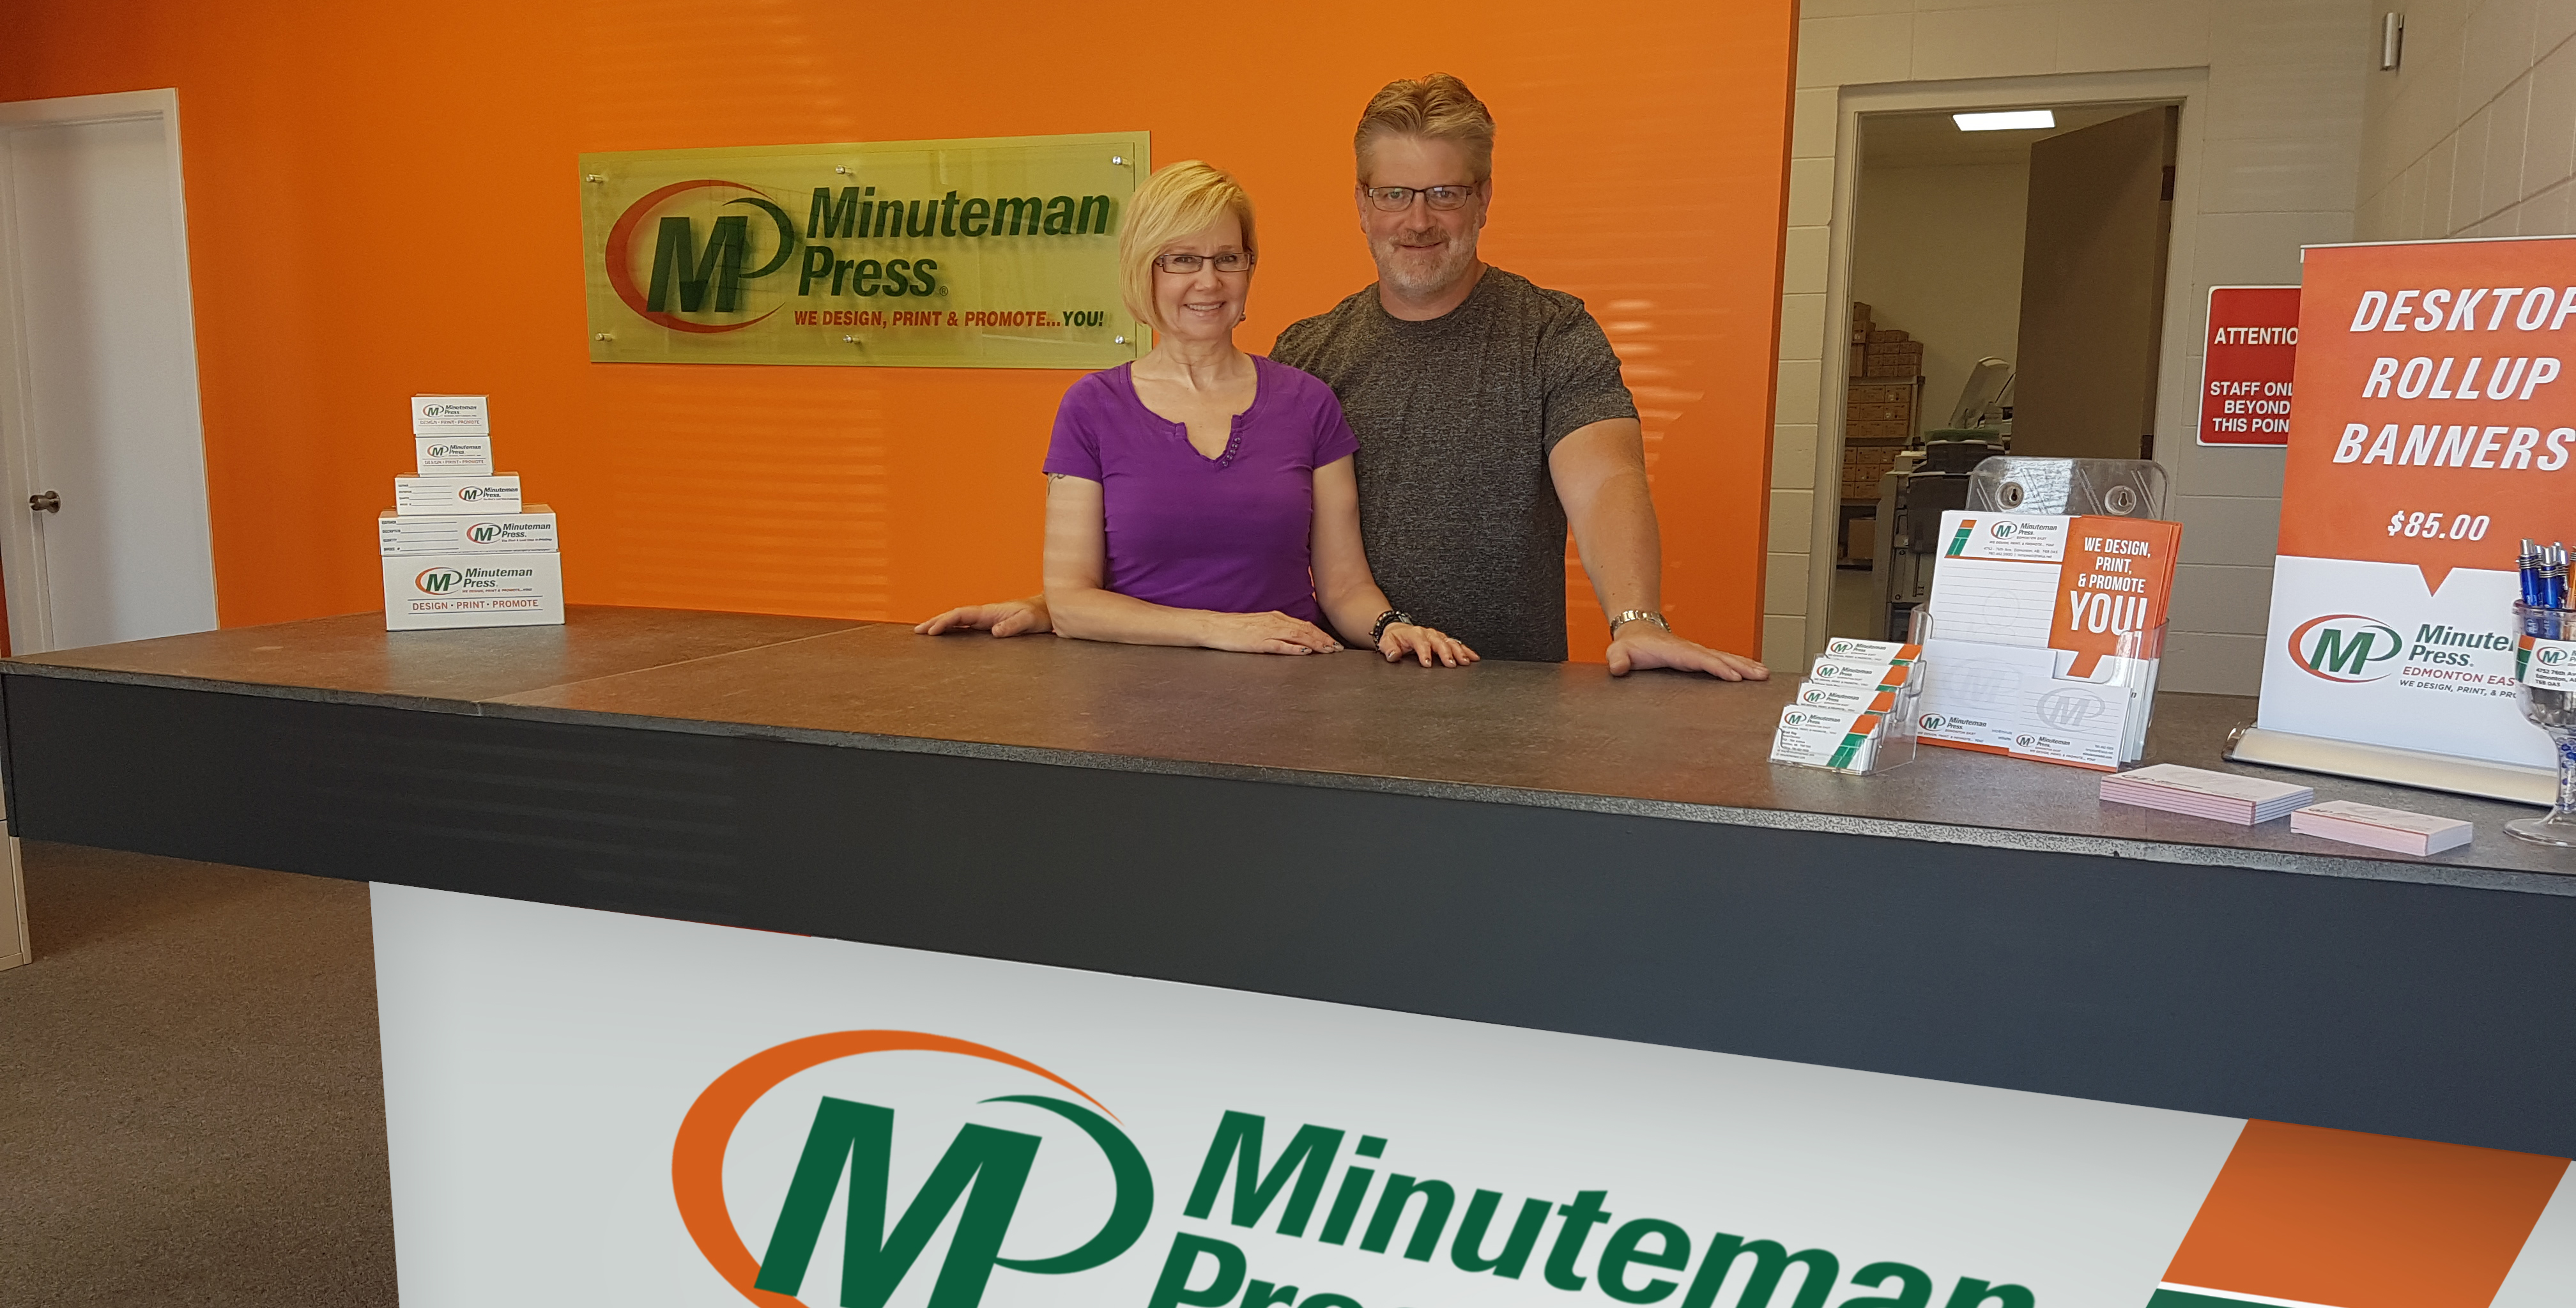 Minuteman Press Edmonton East Canada Printing Franchise - Alison Jack-Ray and Brad Ray http://www.minutemanpressfranchise.com